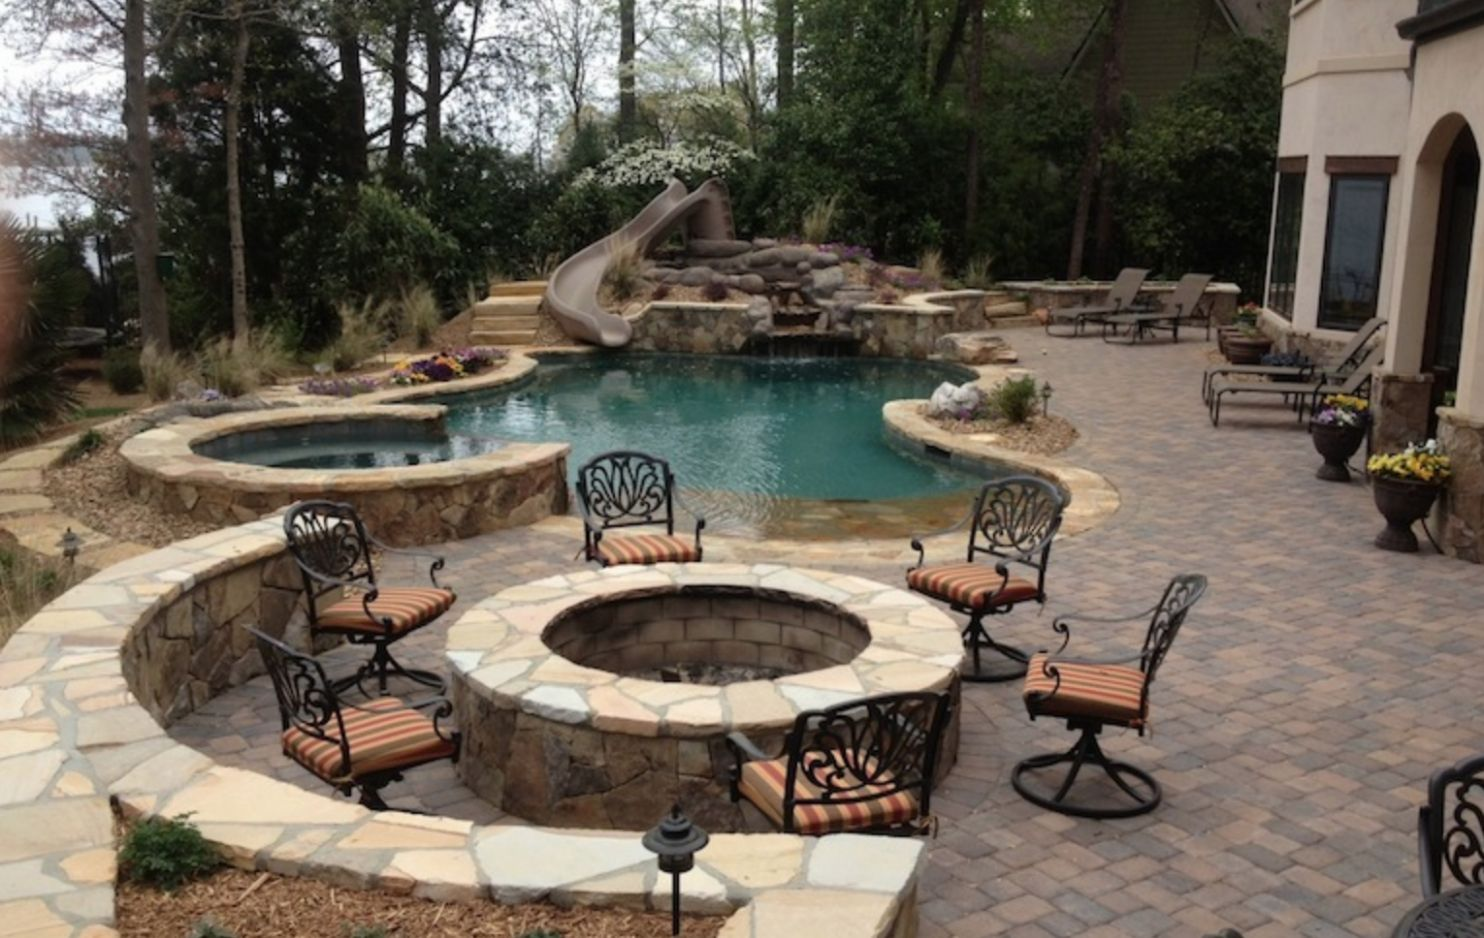 Pool Patios From Grill In Ground Patio Ideas On Home Designs Diy ..